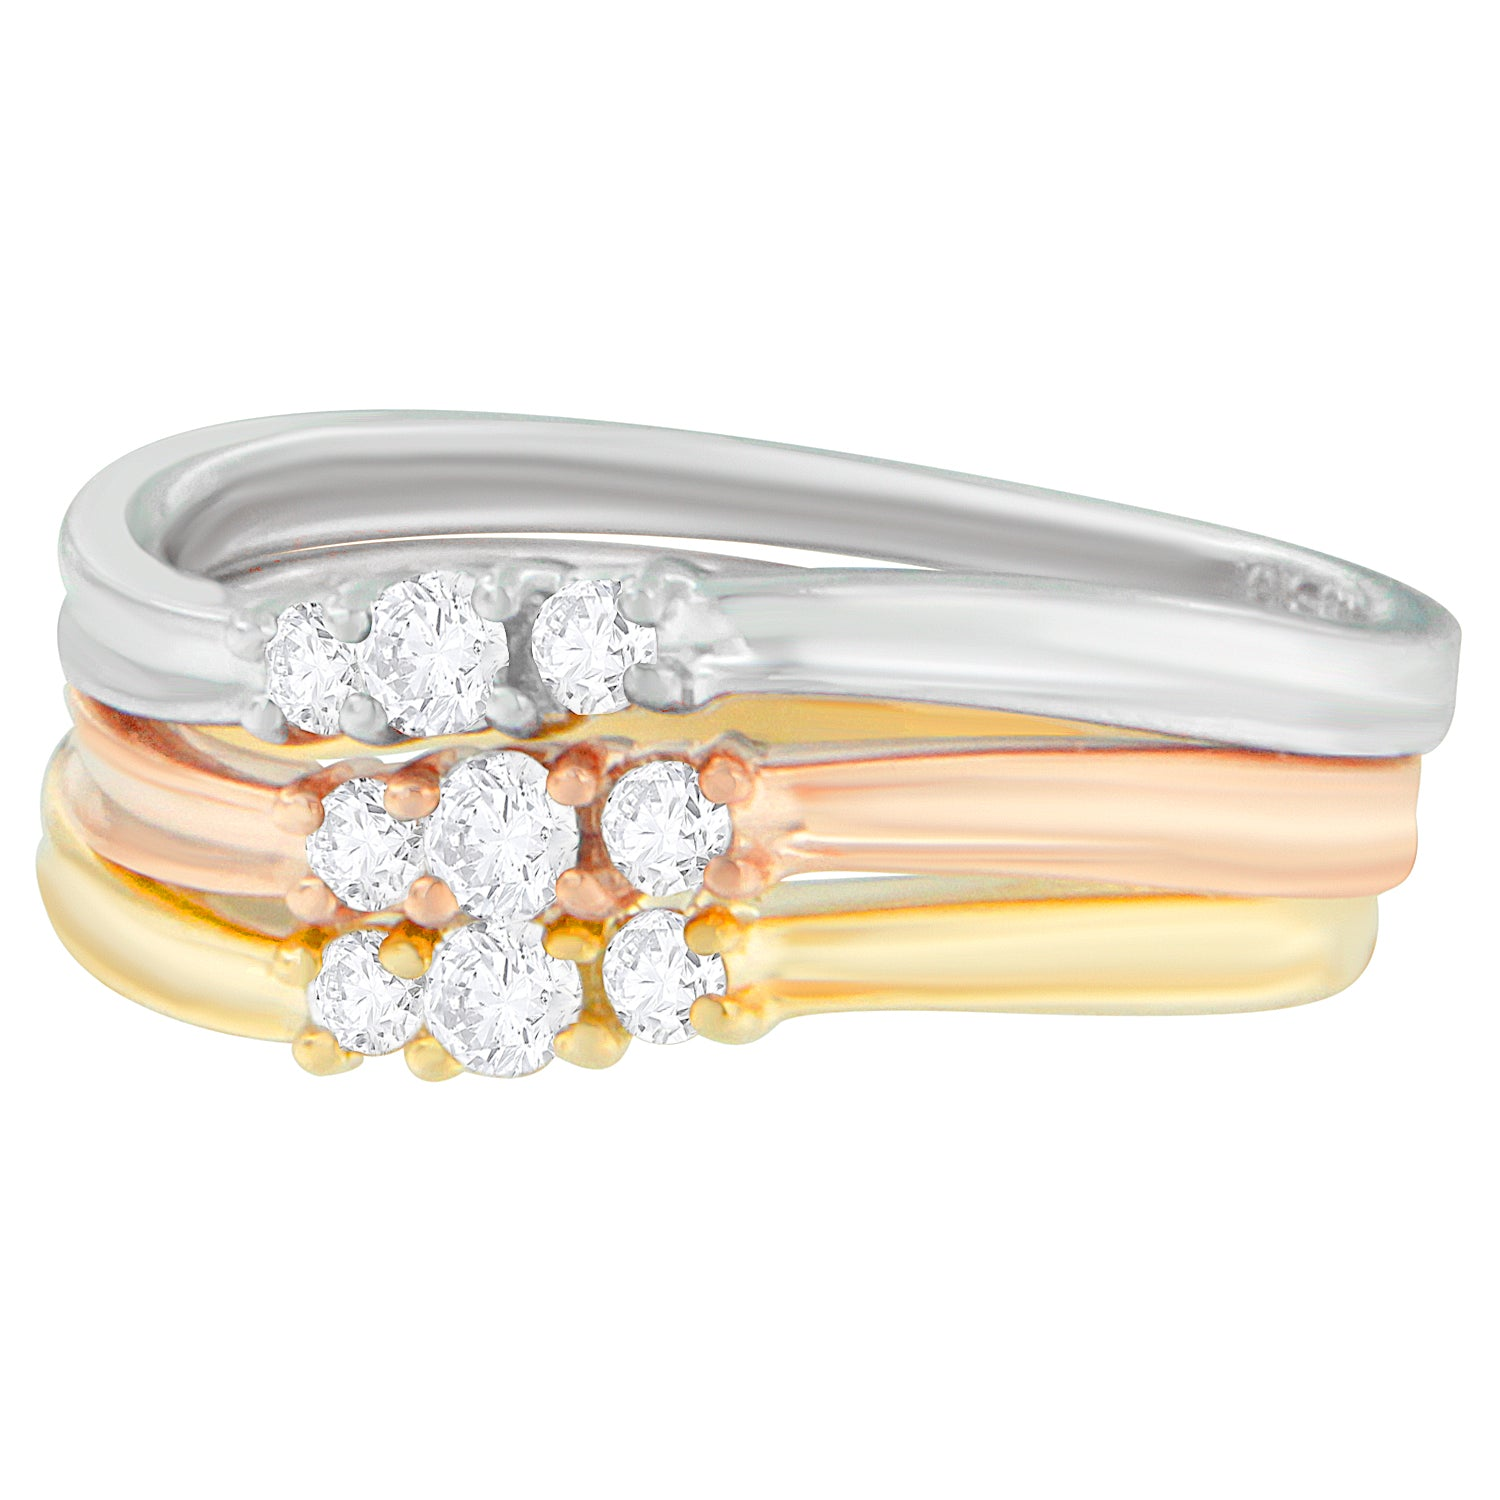 10K Gold 1/3ct TDW Stackable S-Curve Diamond Ring Set (H-I,SI2-I1)